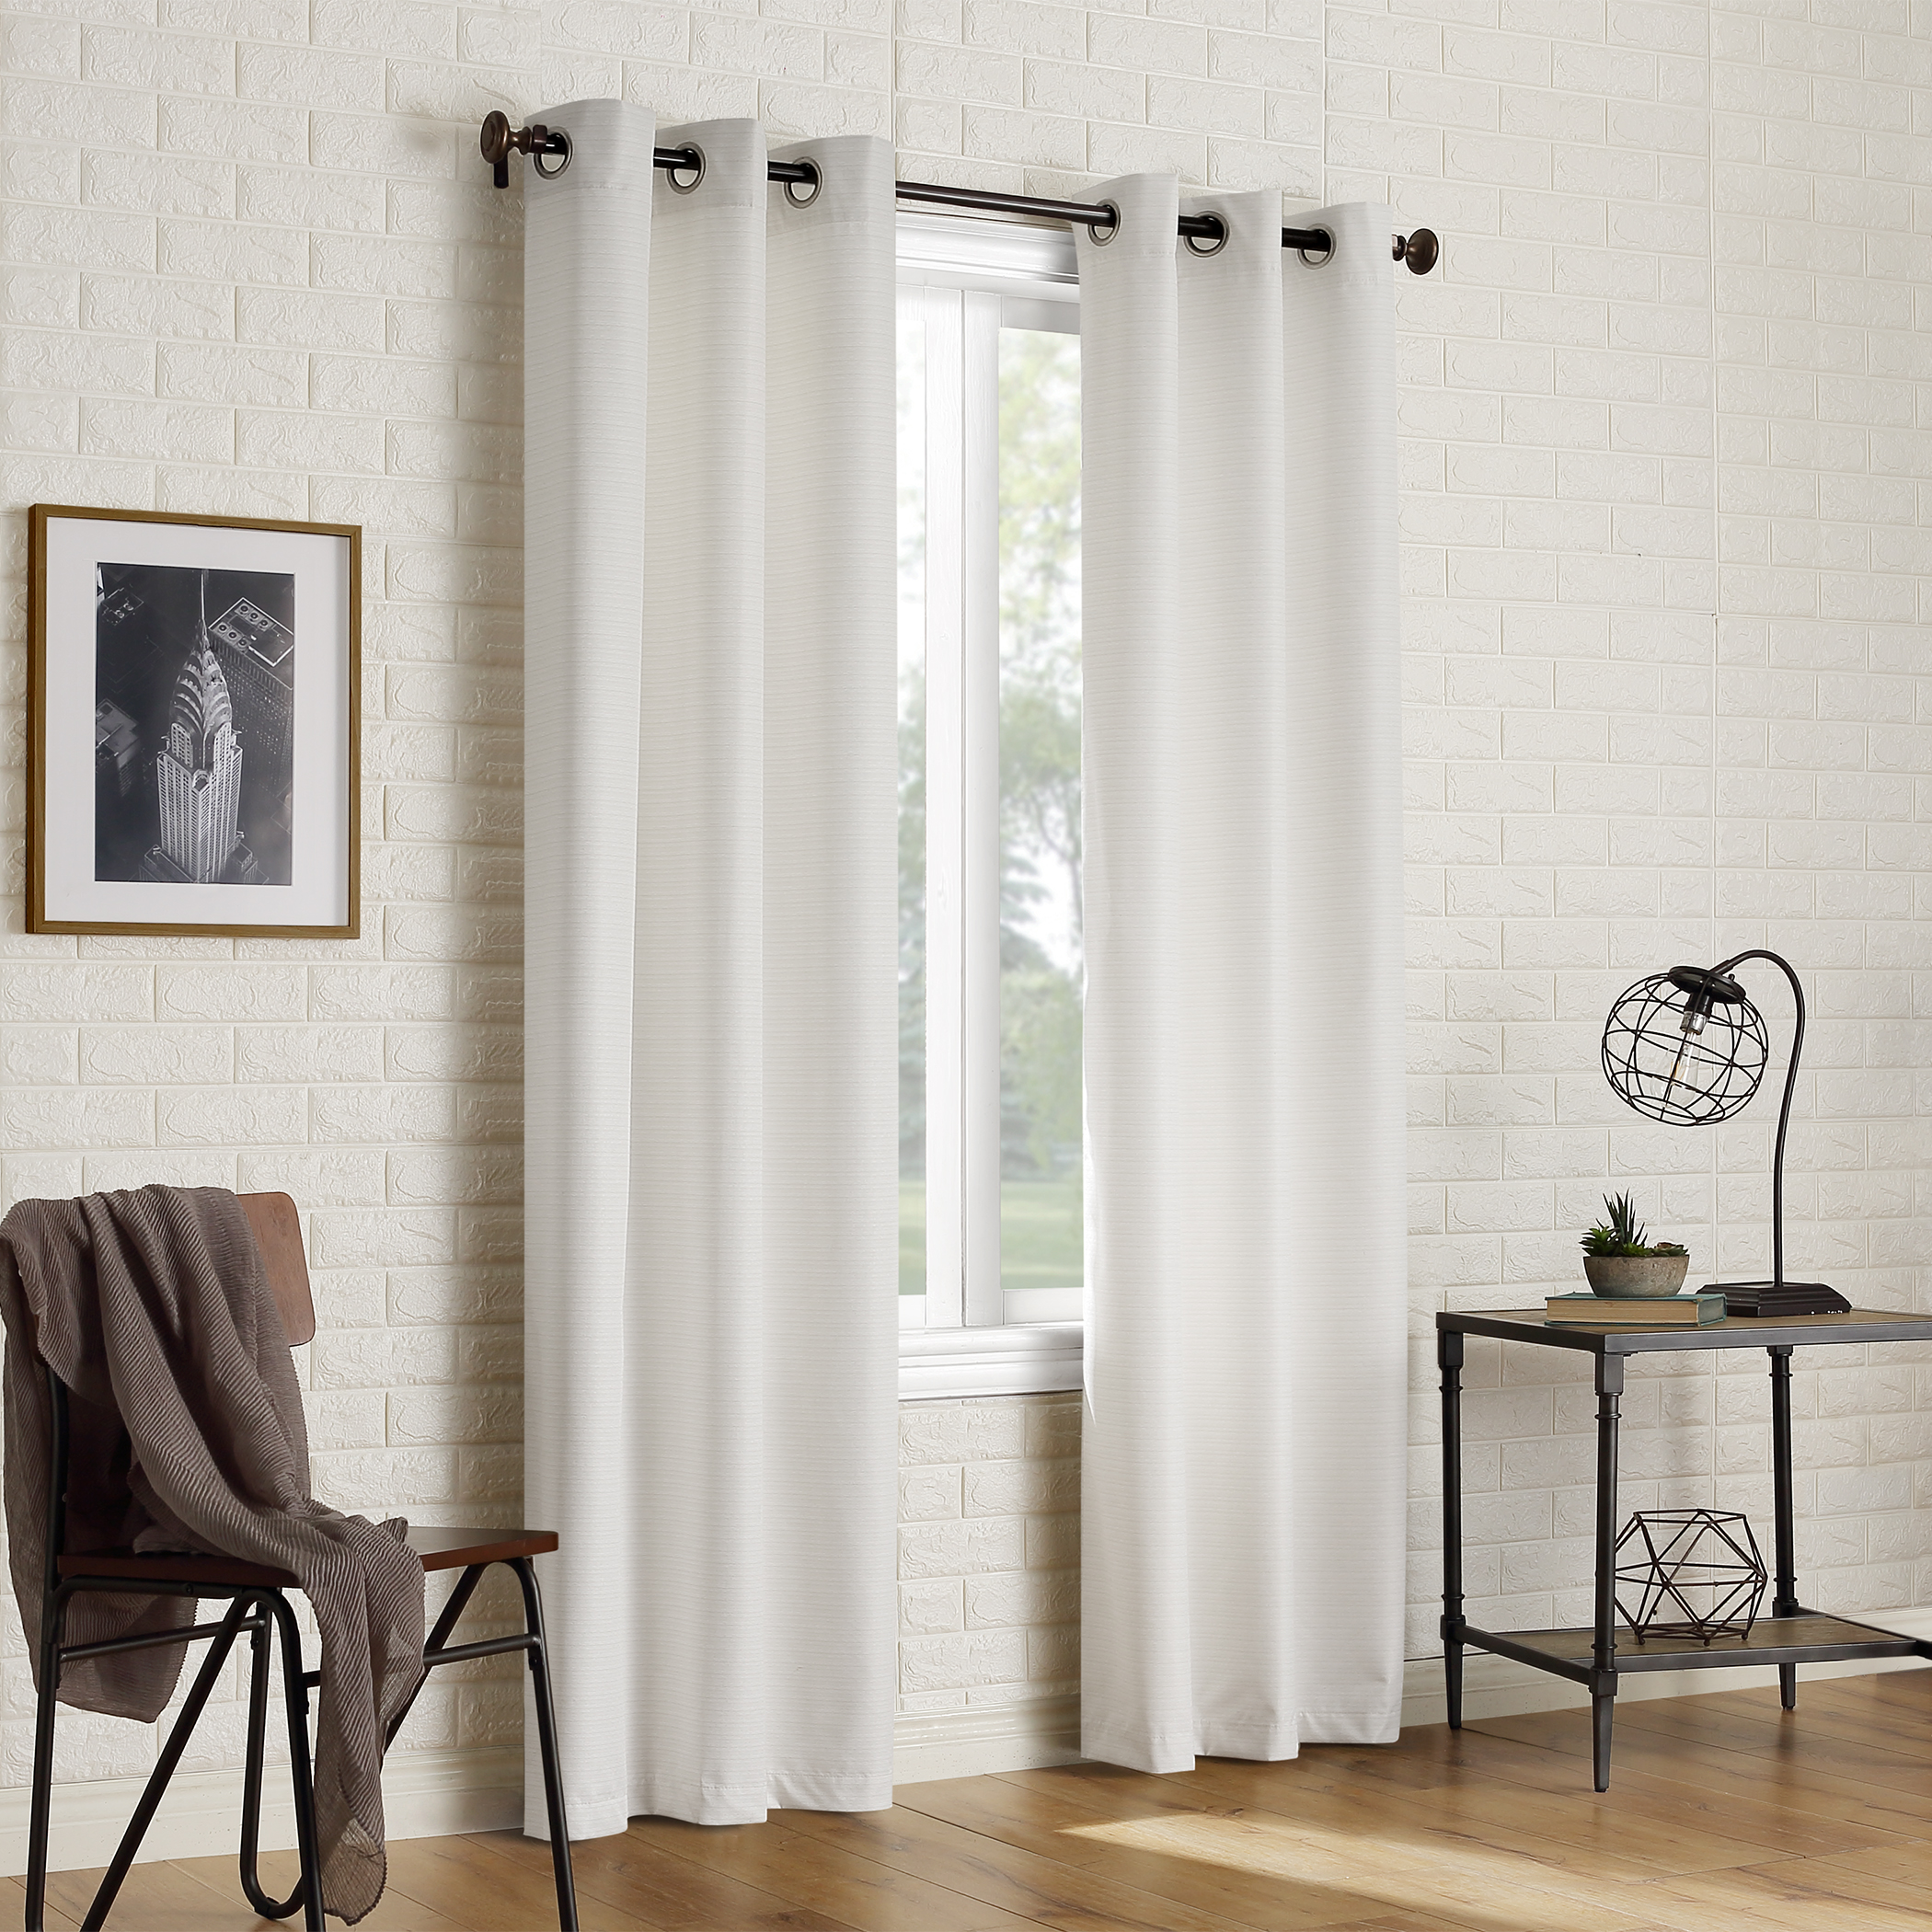 Curtains window treatments walmart com